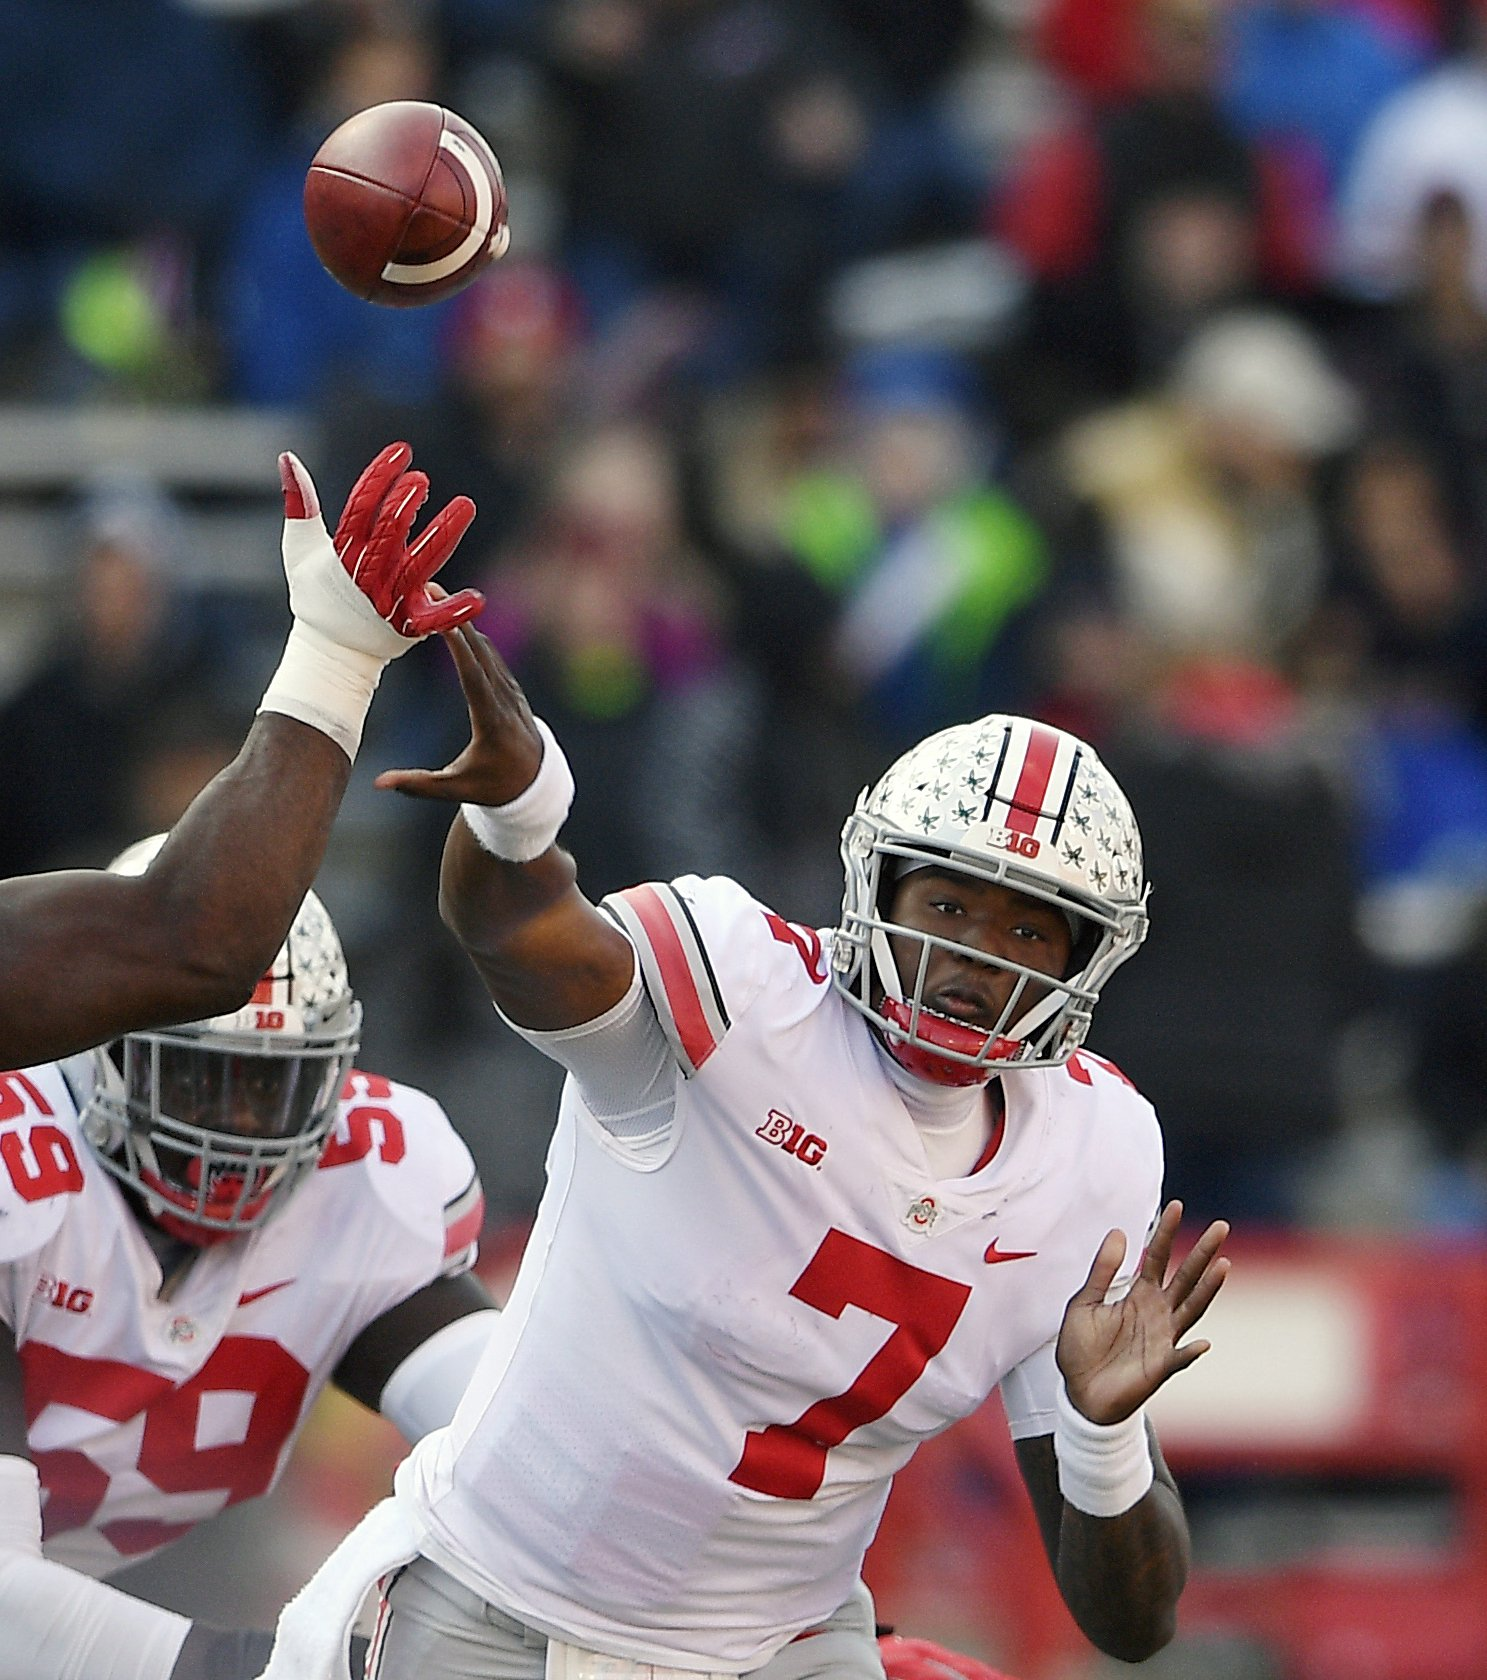 Haskins, Bush receive the highest awards from the AP All-Big Ten Team - Associated Press